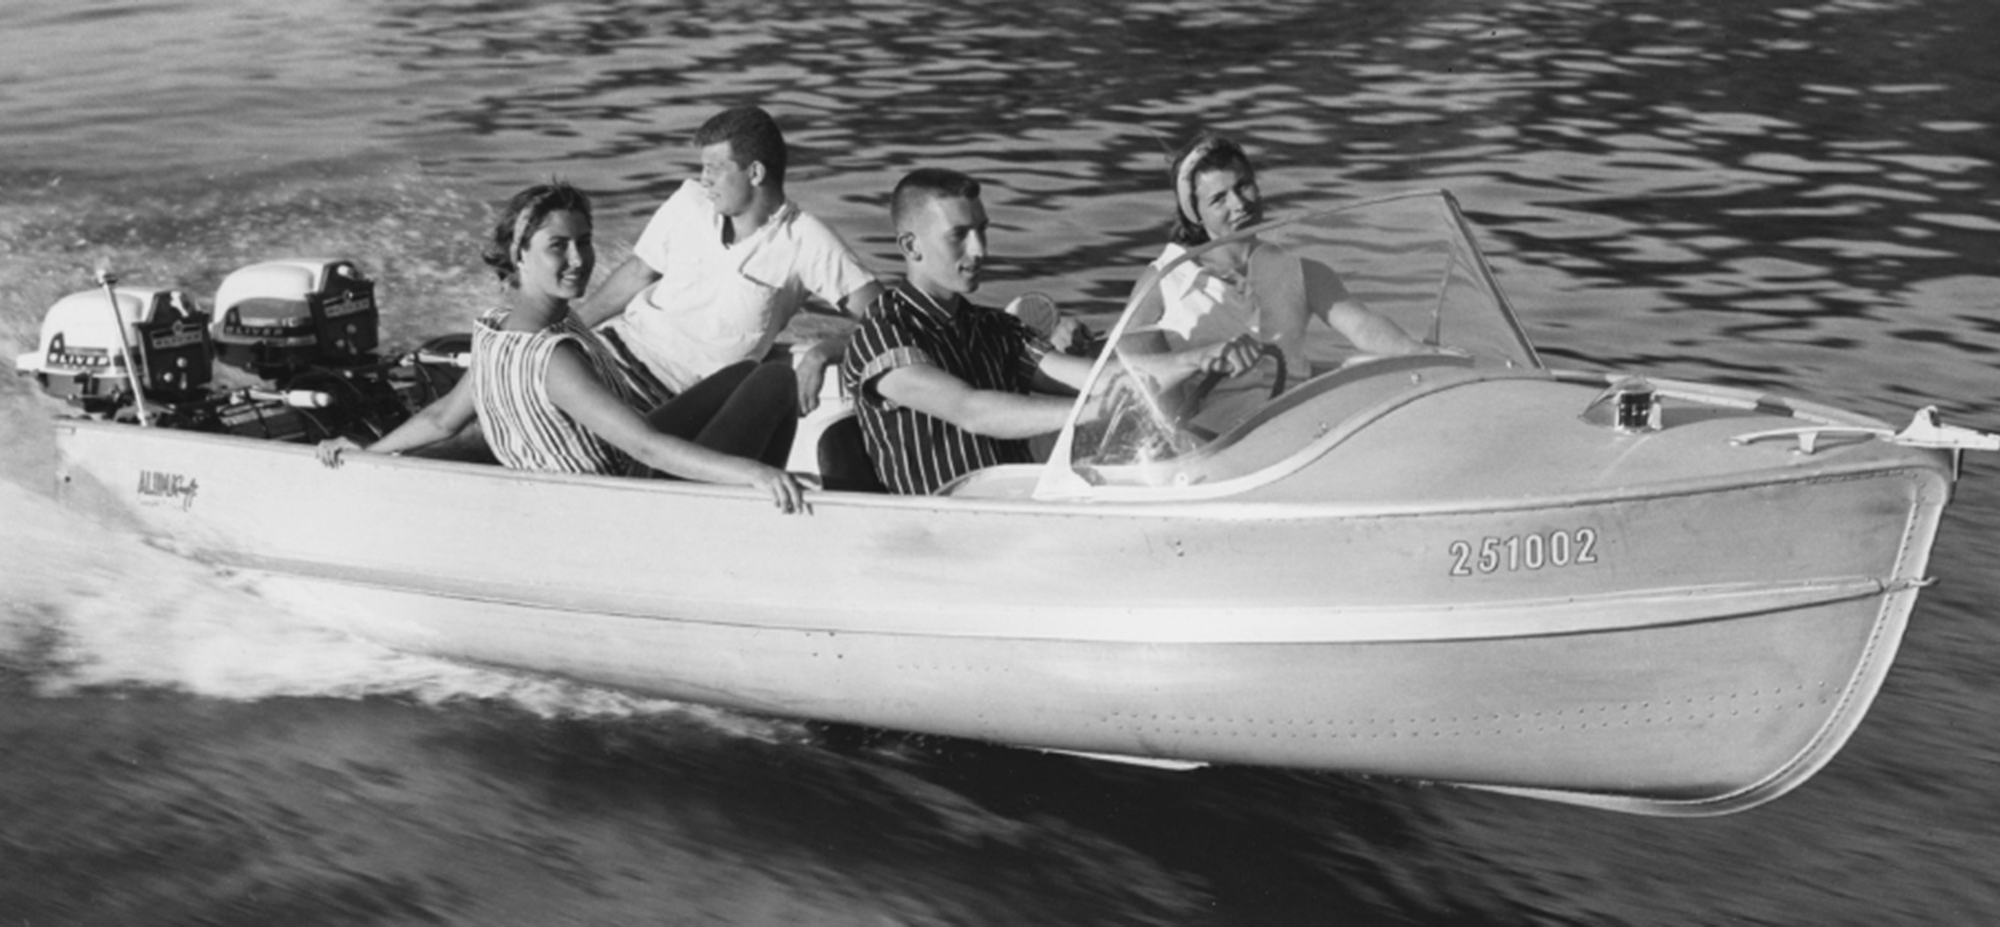 The first aluminum boat produced by Flour City subsidiary, Alumacraft, came off the production line in 1946.